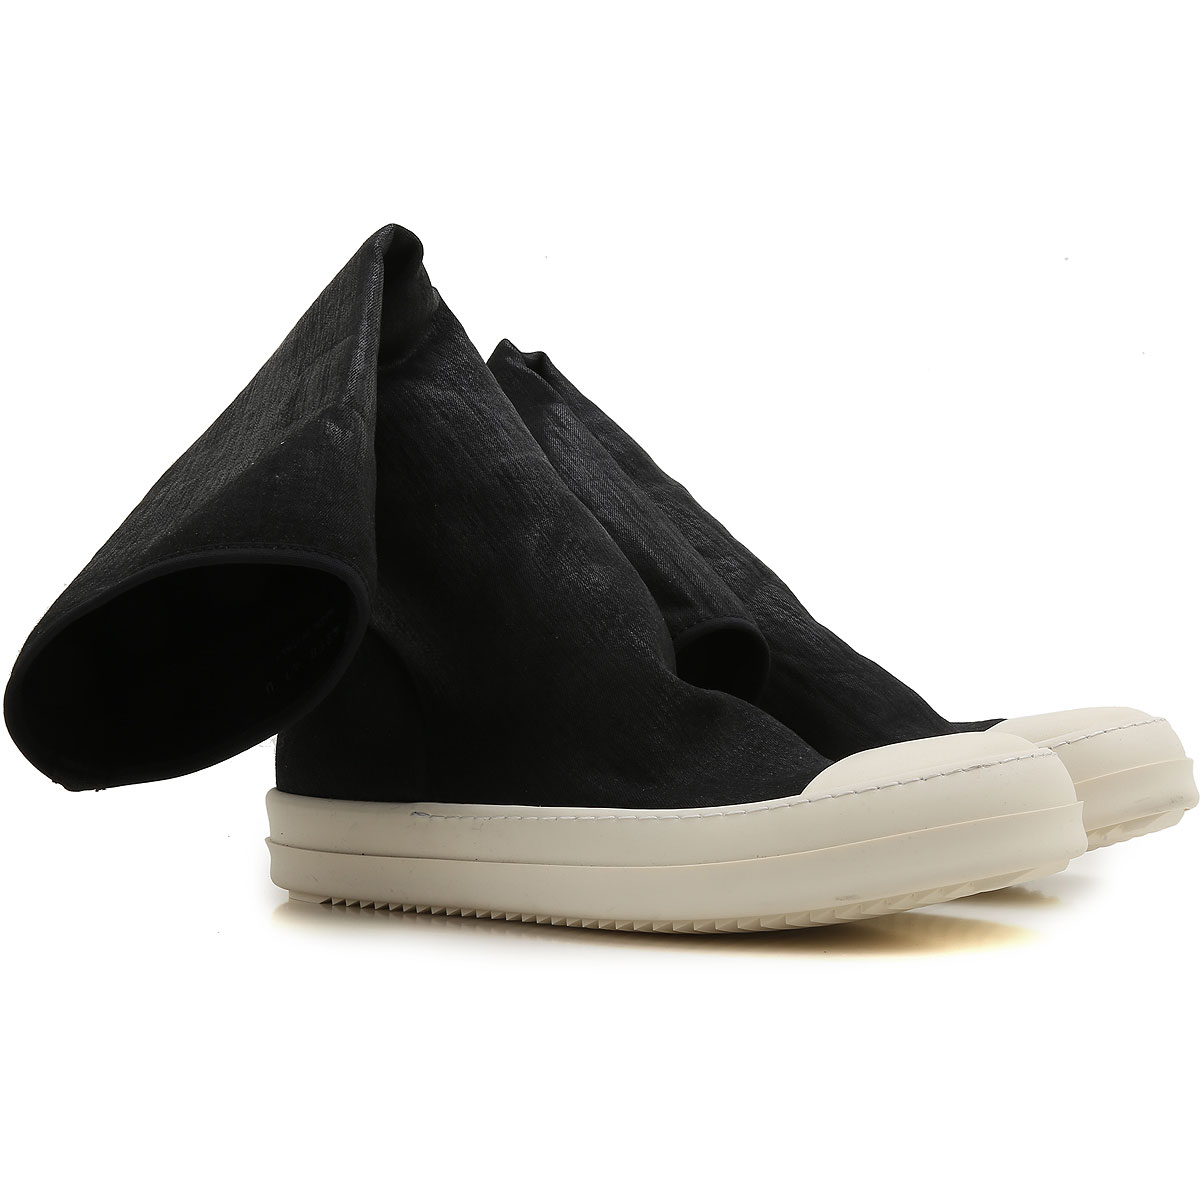 Image of Rick Owens DRKSHDW Boots for Men, Booties On Sale, Black, Fabric, 2017, 7.5 8.5 9.5